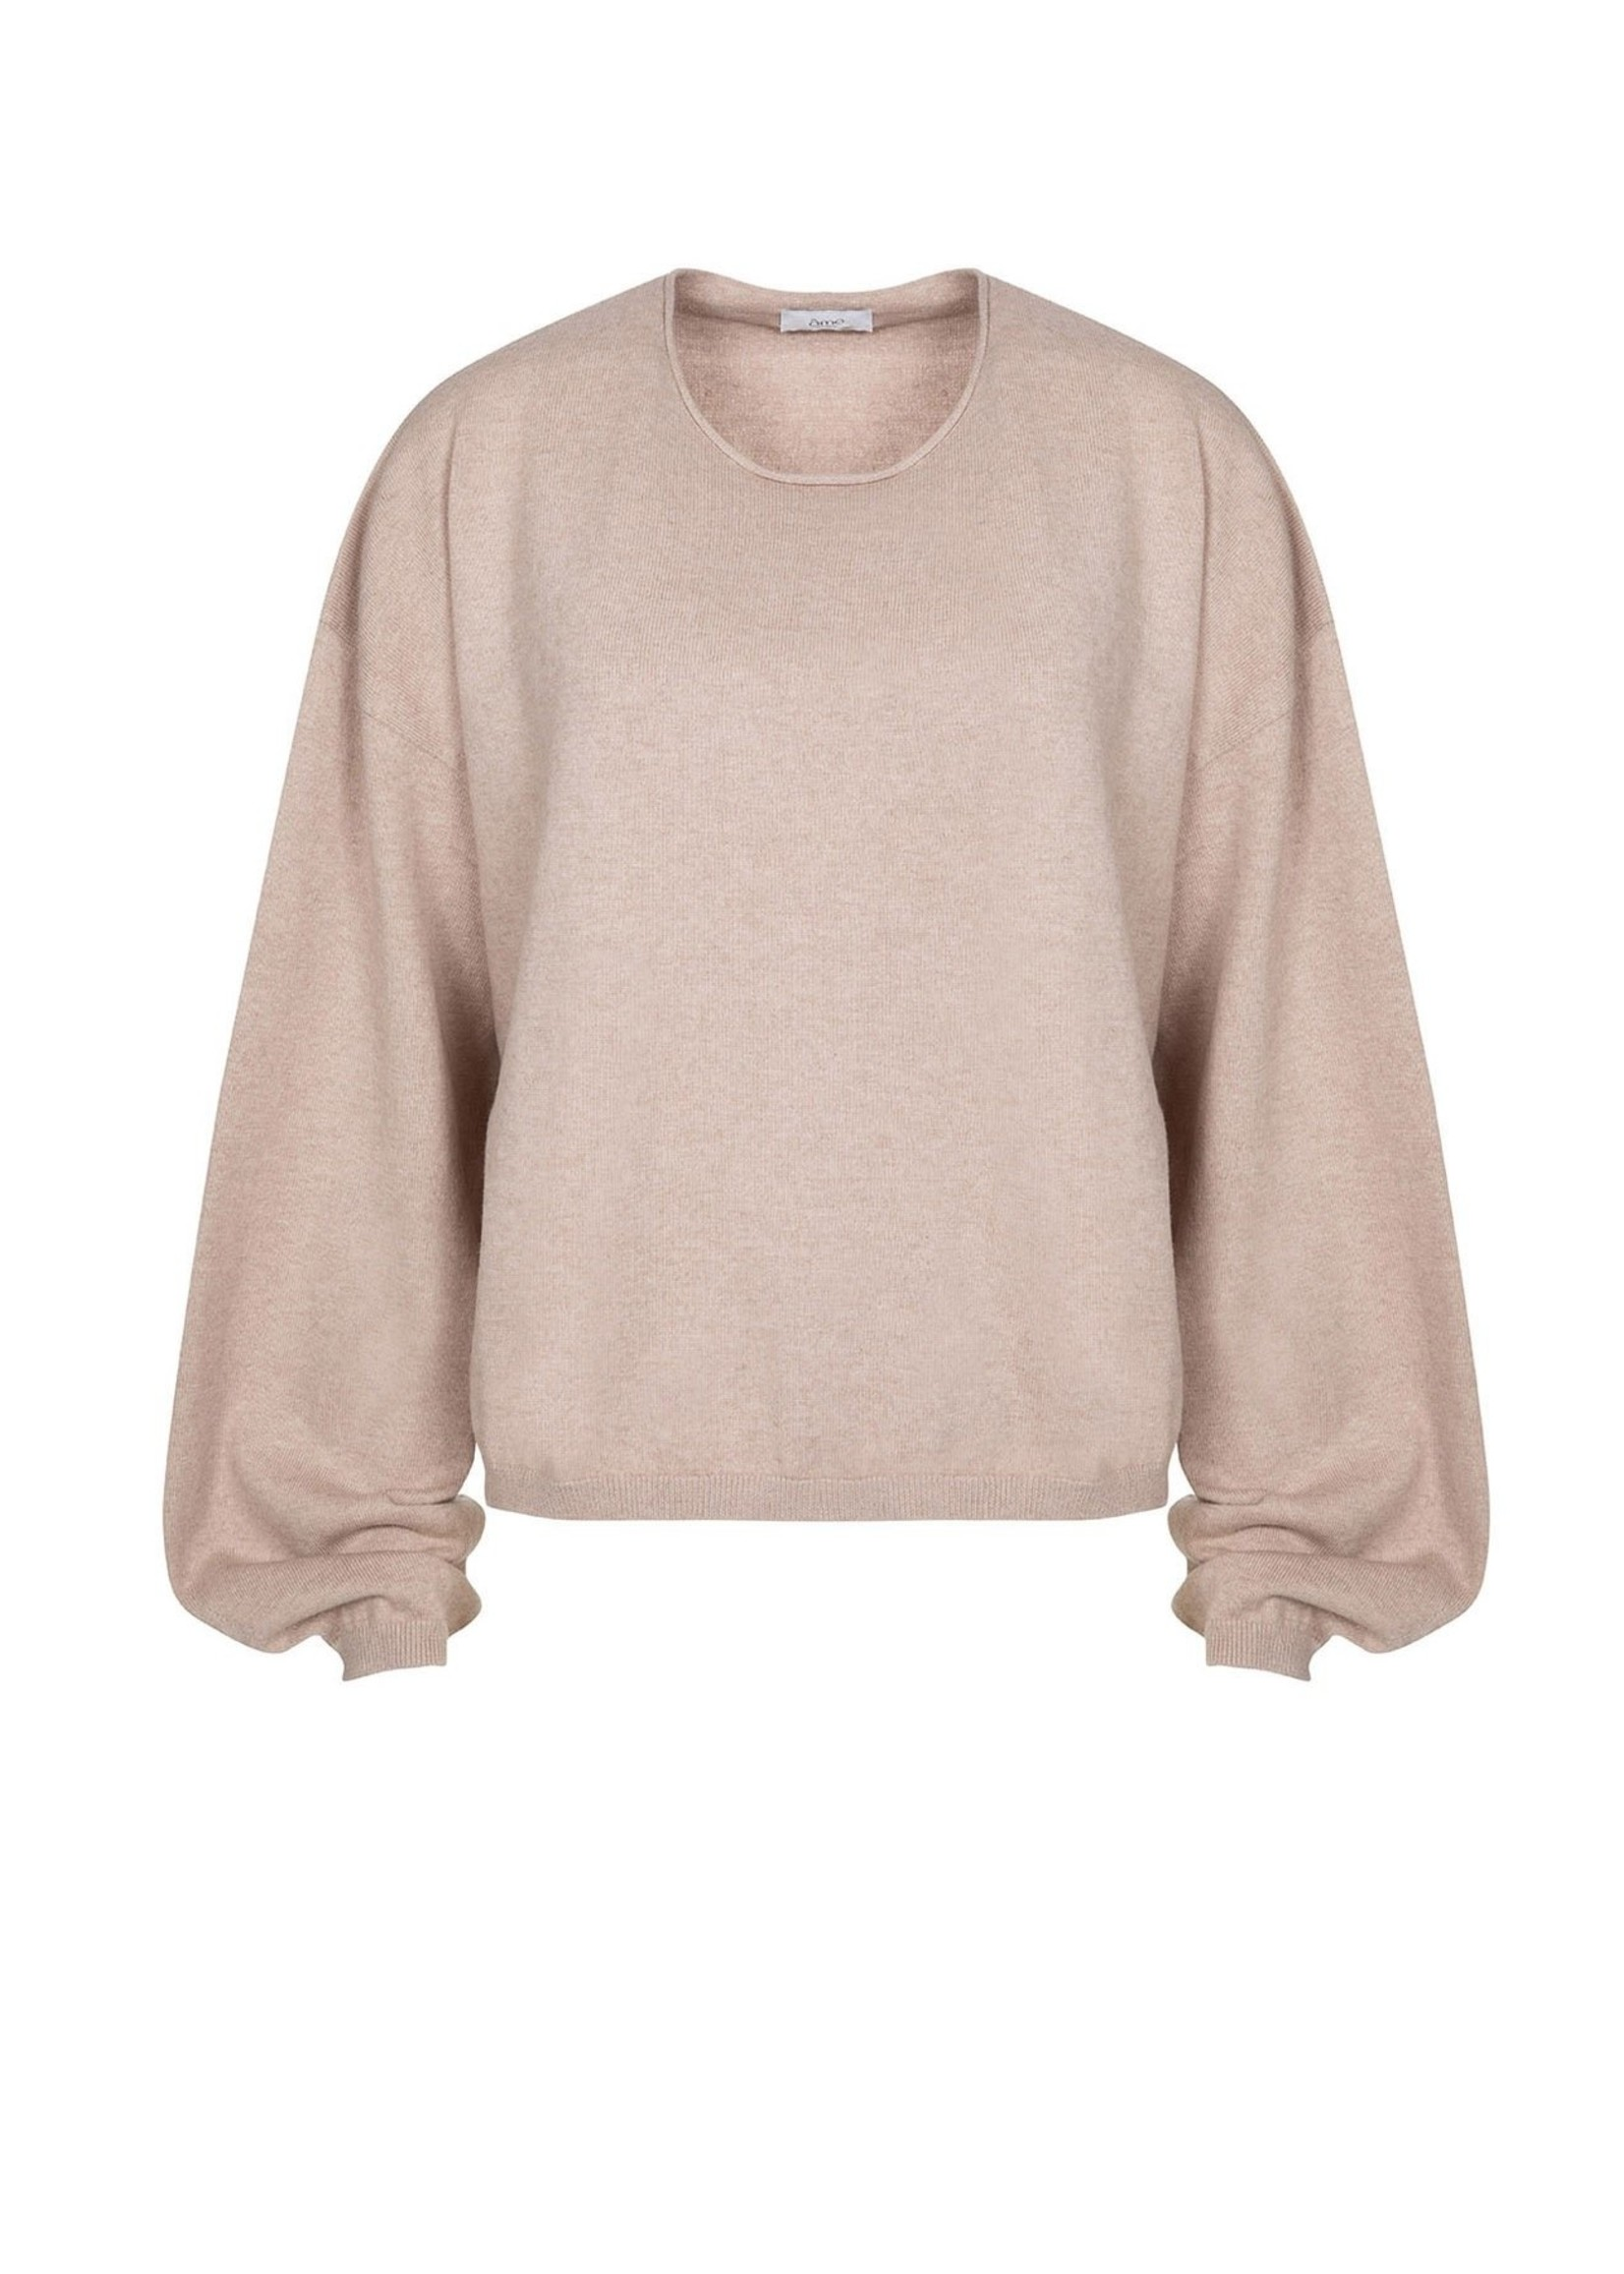 COTTON CASHMERE PUFF SLEEVES KNIT